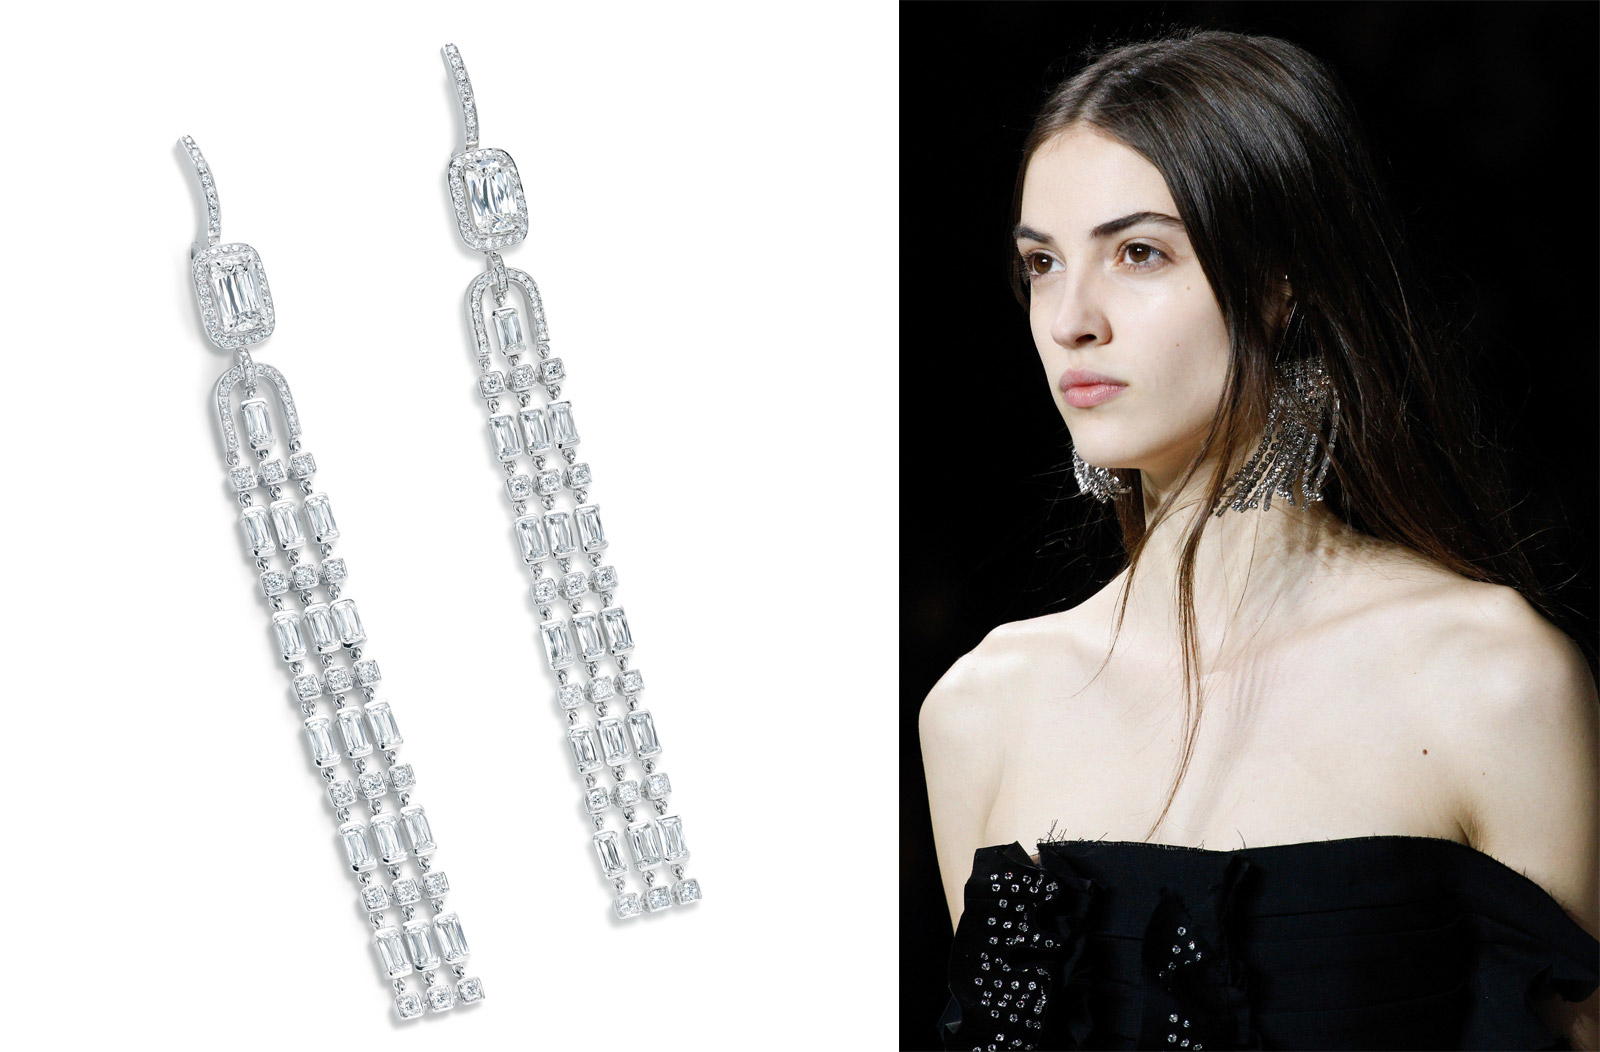 Boodles Ashoka diamond earrings from the Thrilliant collection